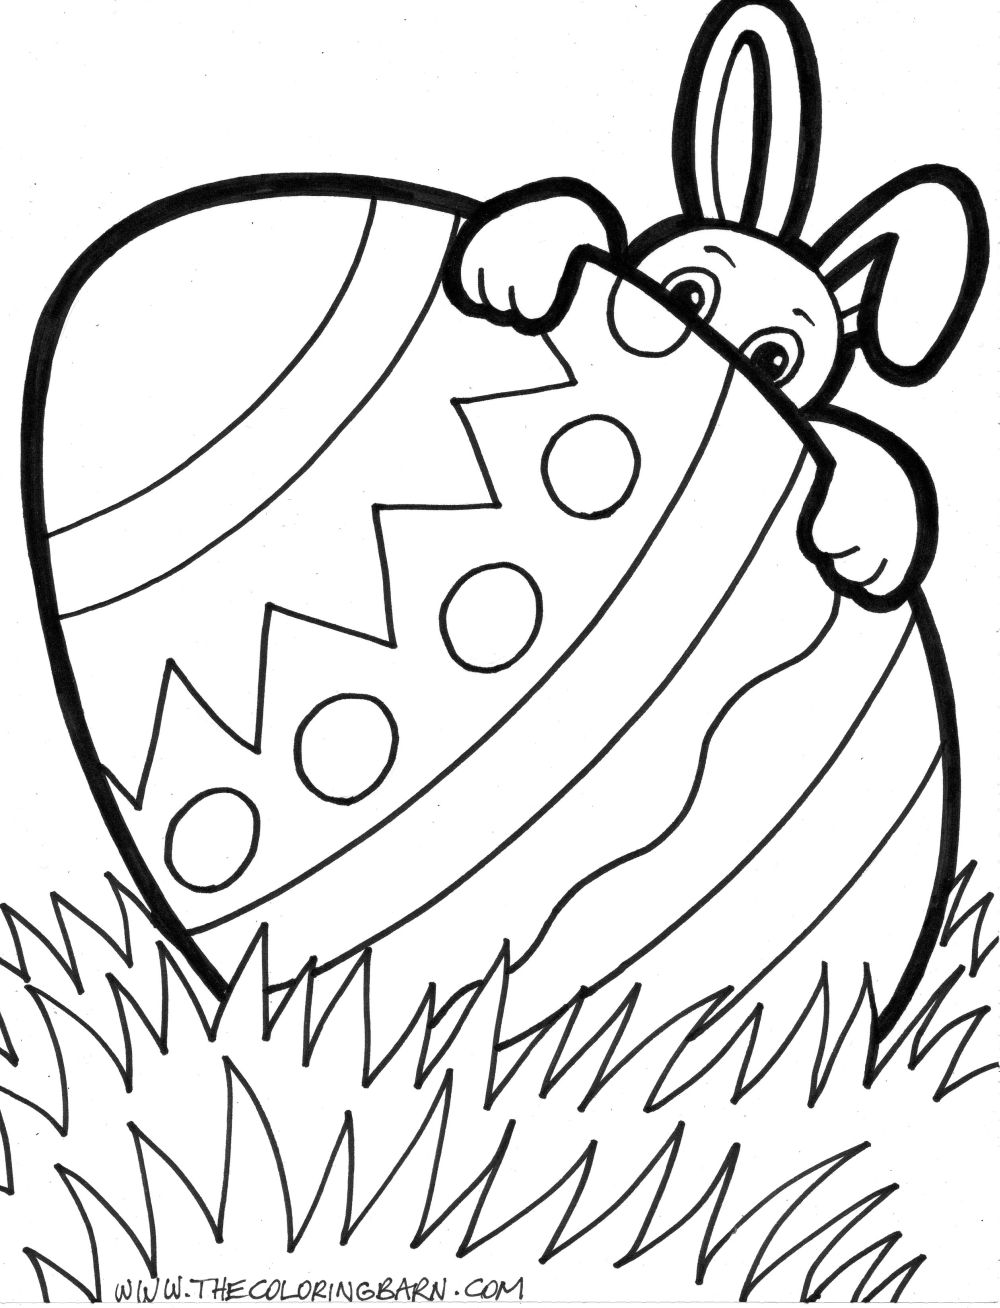 easter online coloring pages - photo#8